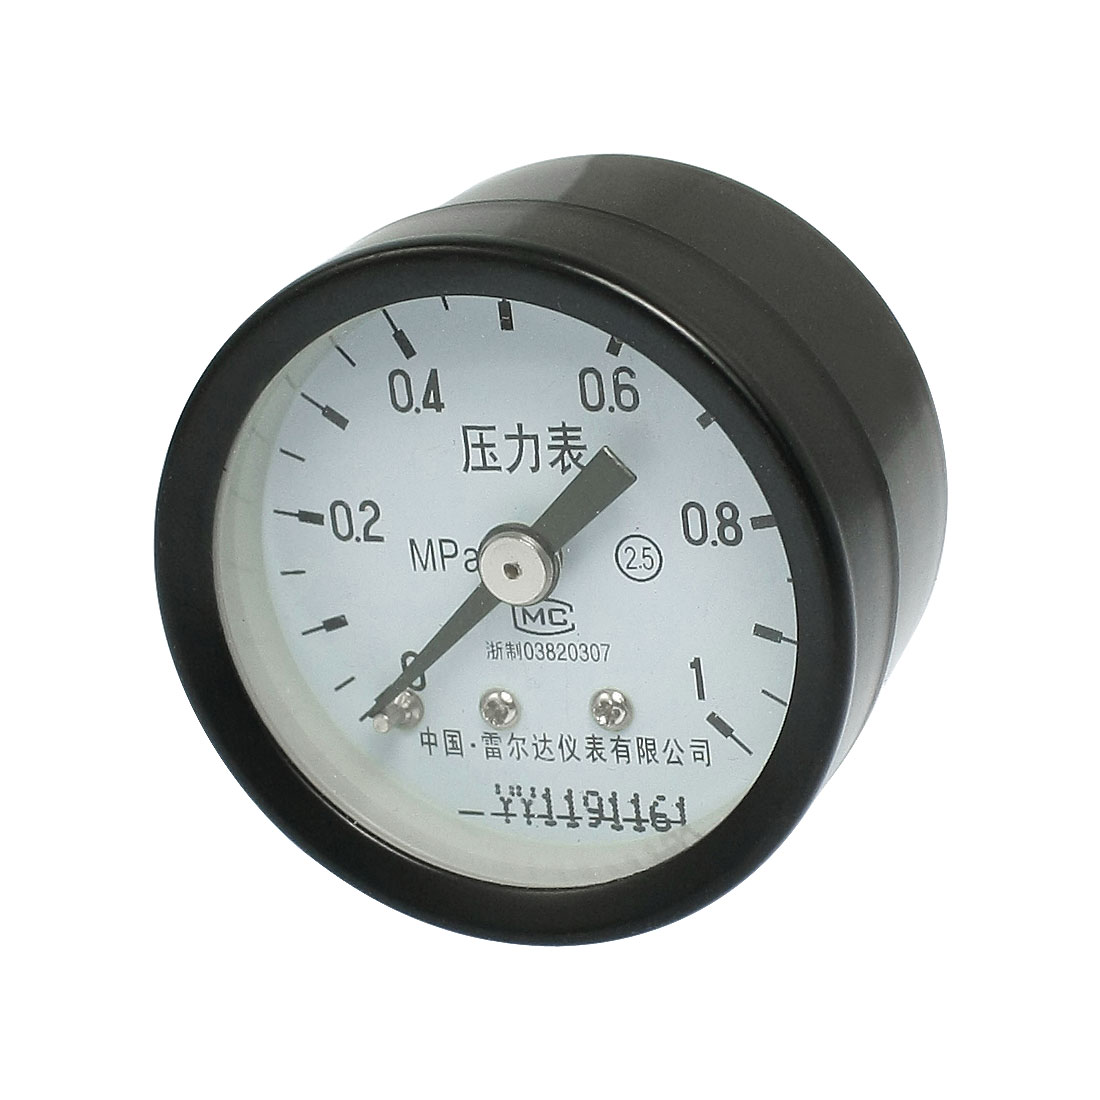 "Metal Casing 1.7"" Face 3/8"" Thread Air Pressure Gauge 0-1 MPa"